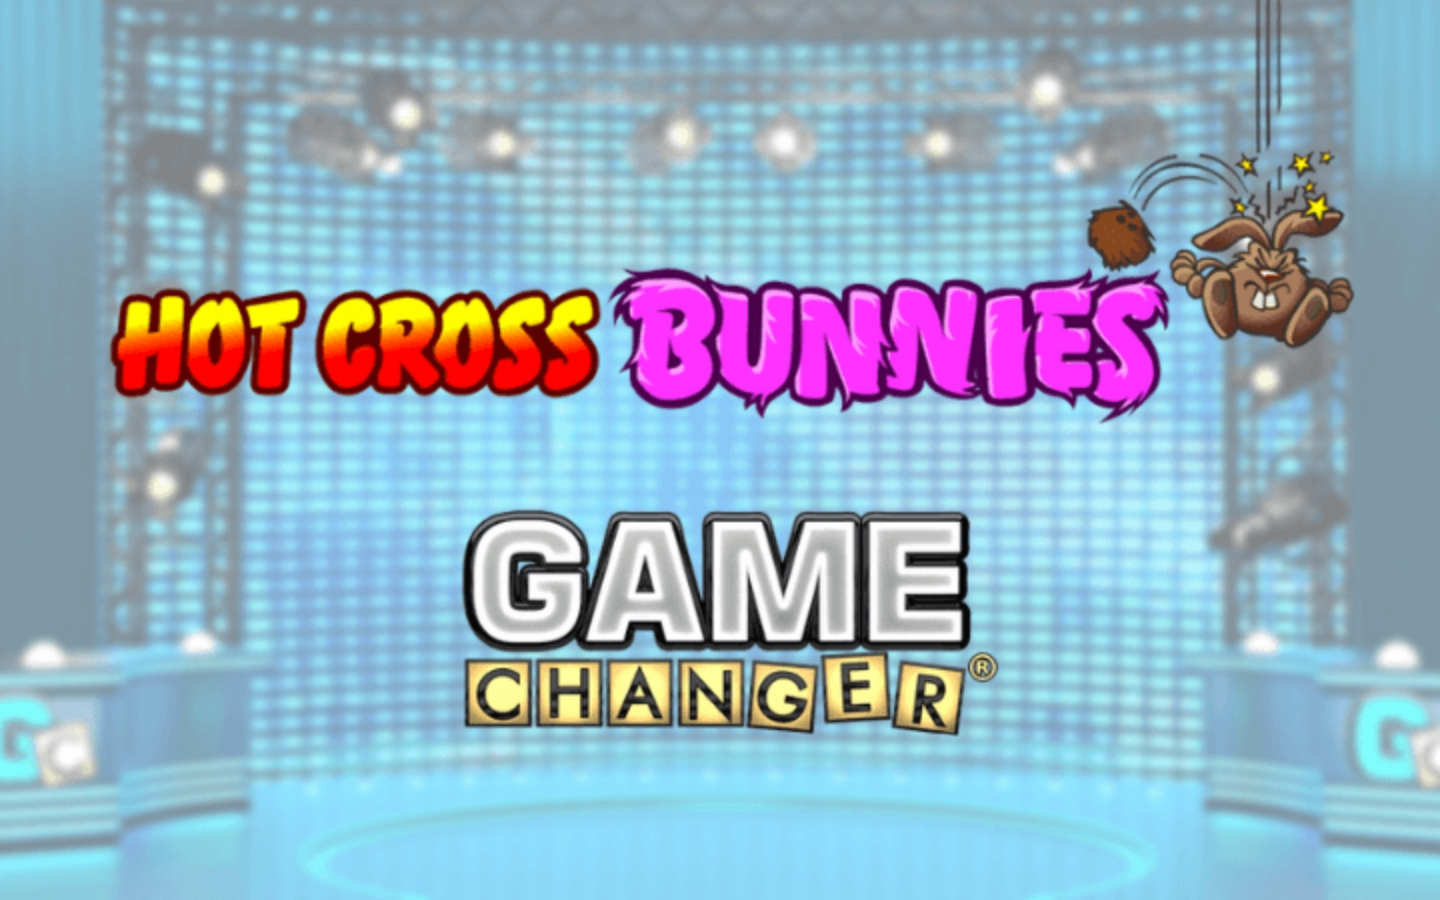 The Hot Cross Bunnies Game Changer Online Slot Demo Game by Realistic Games